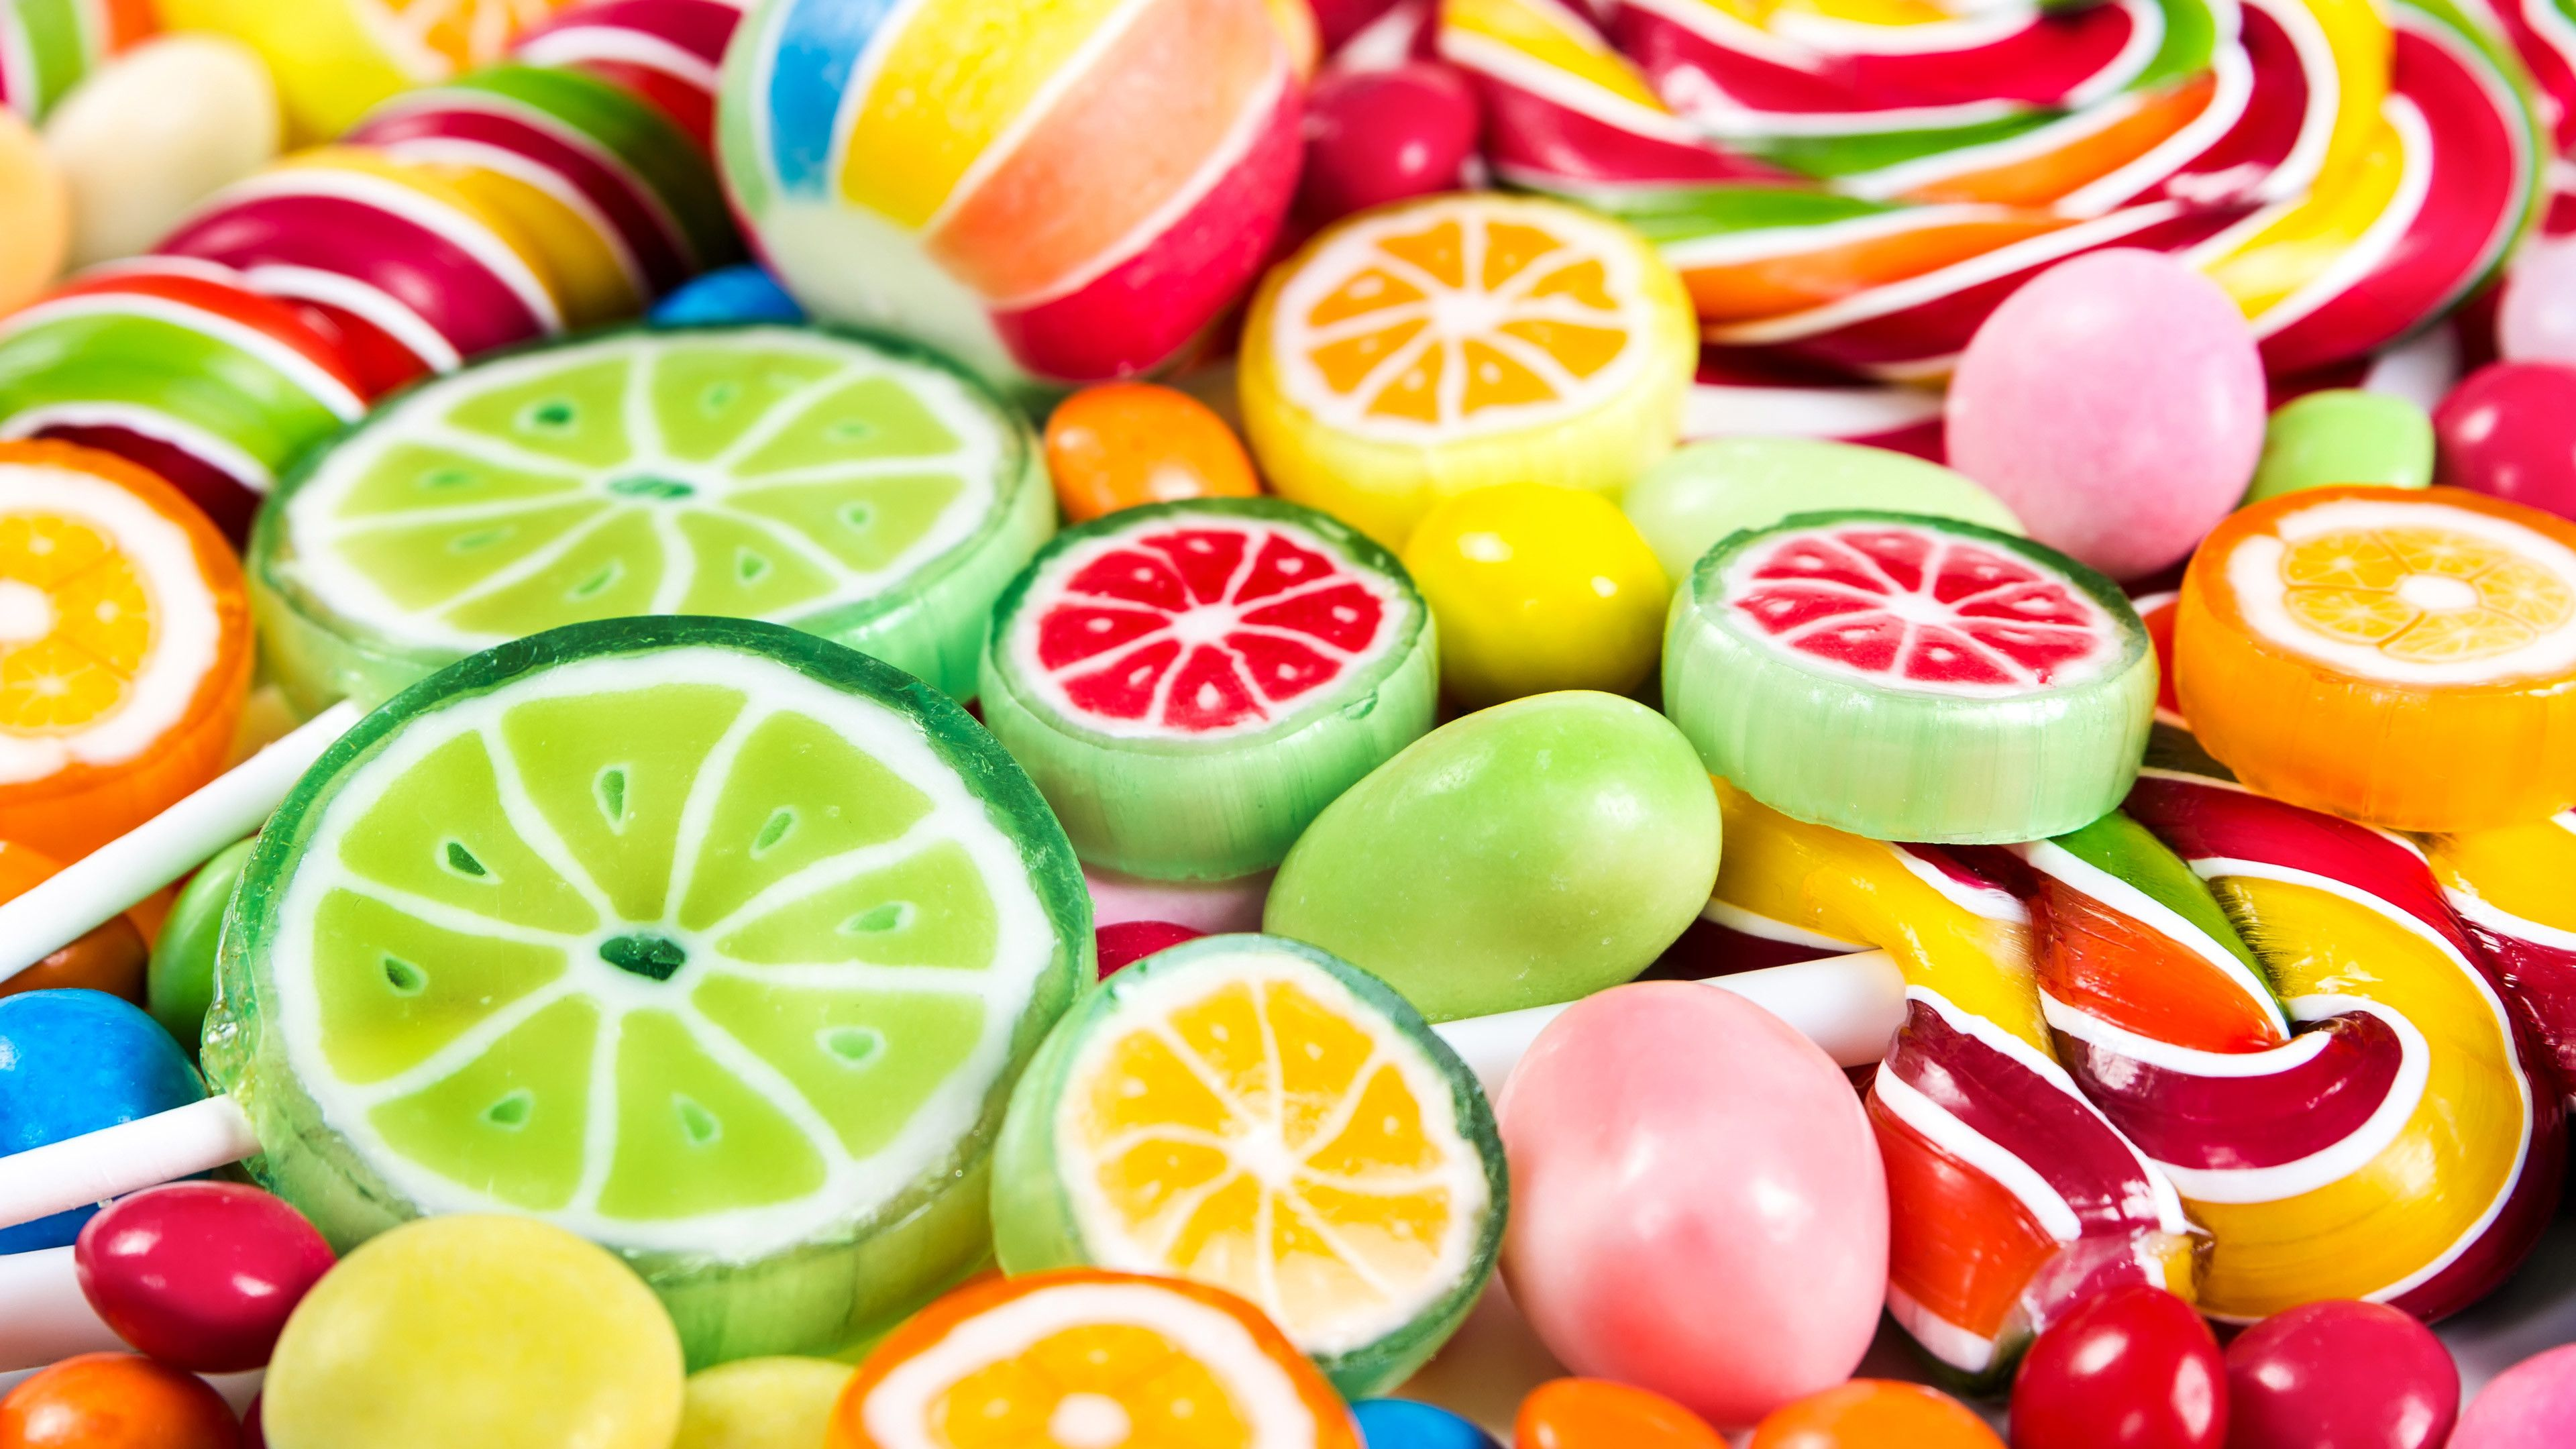 Candy Wallpapers   Top Candy Backgrounds   WallpaperAccess 3840x2160